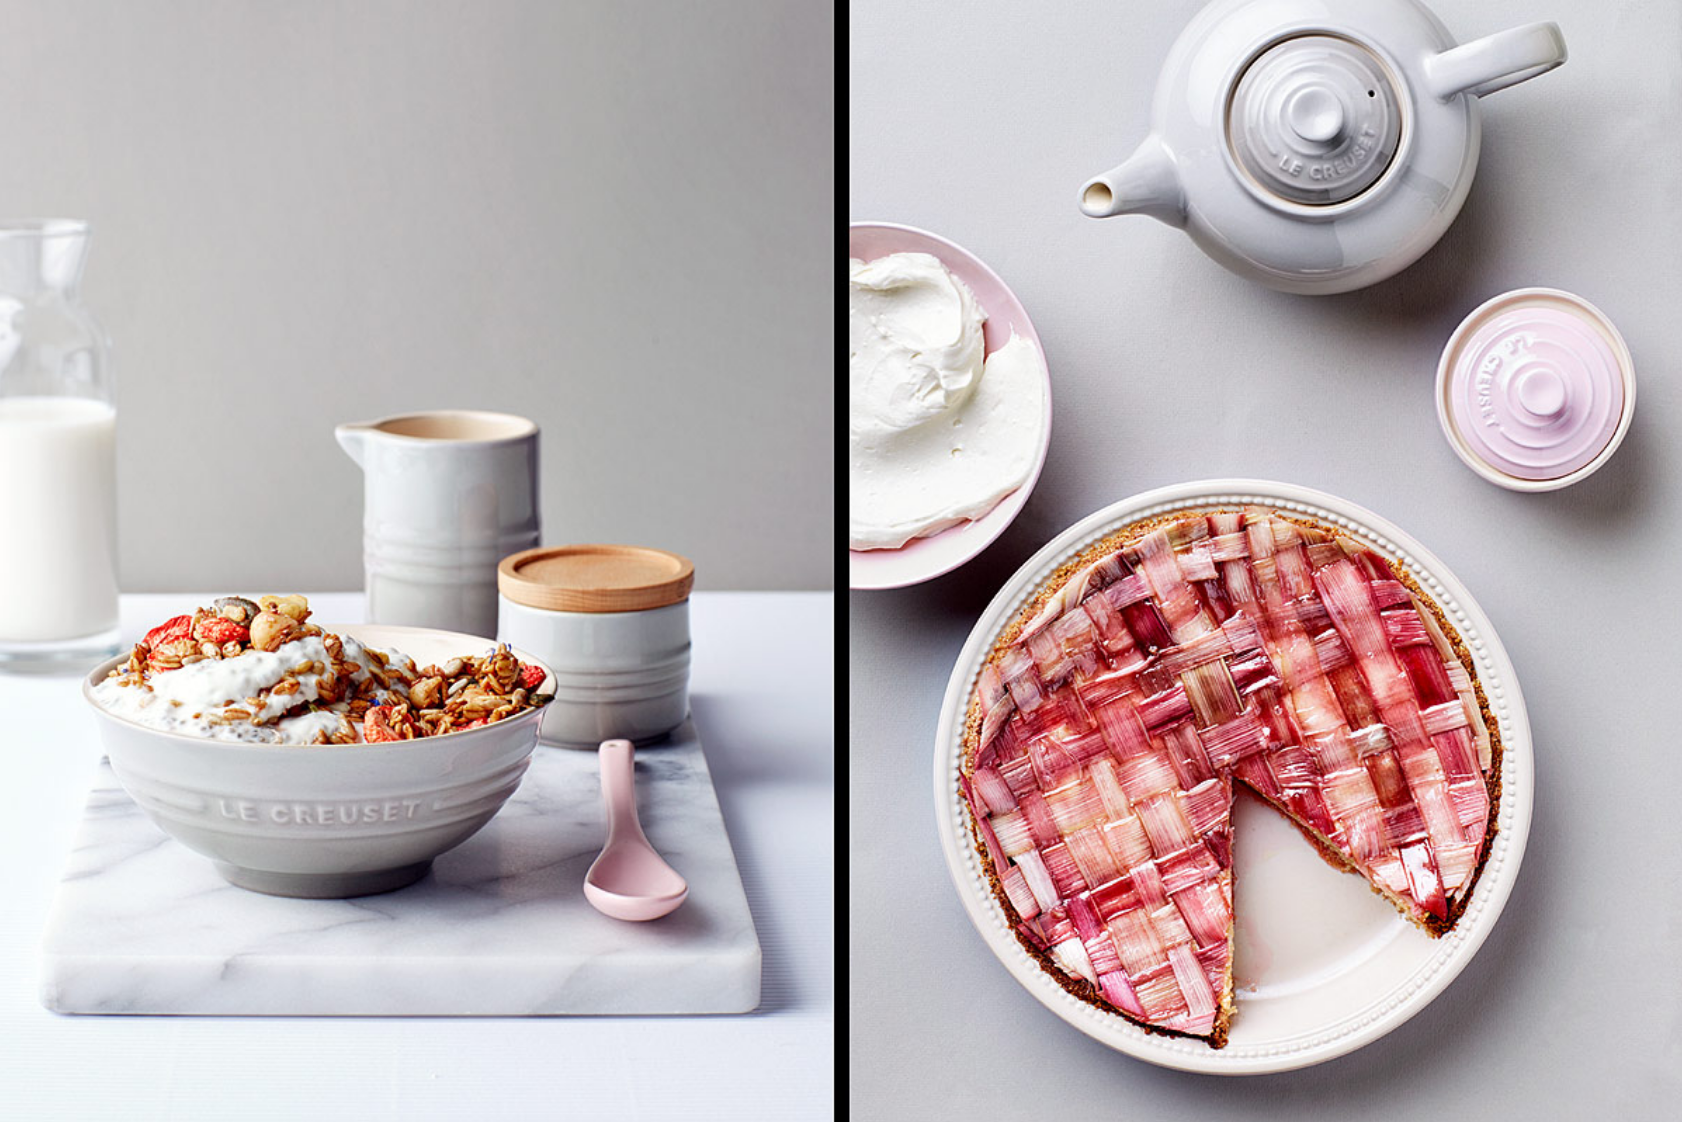 Russell-Smith-food-photography-la-creuset-campaign.jpg